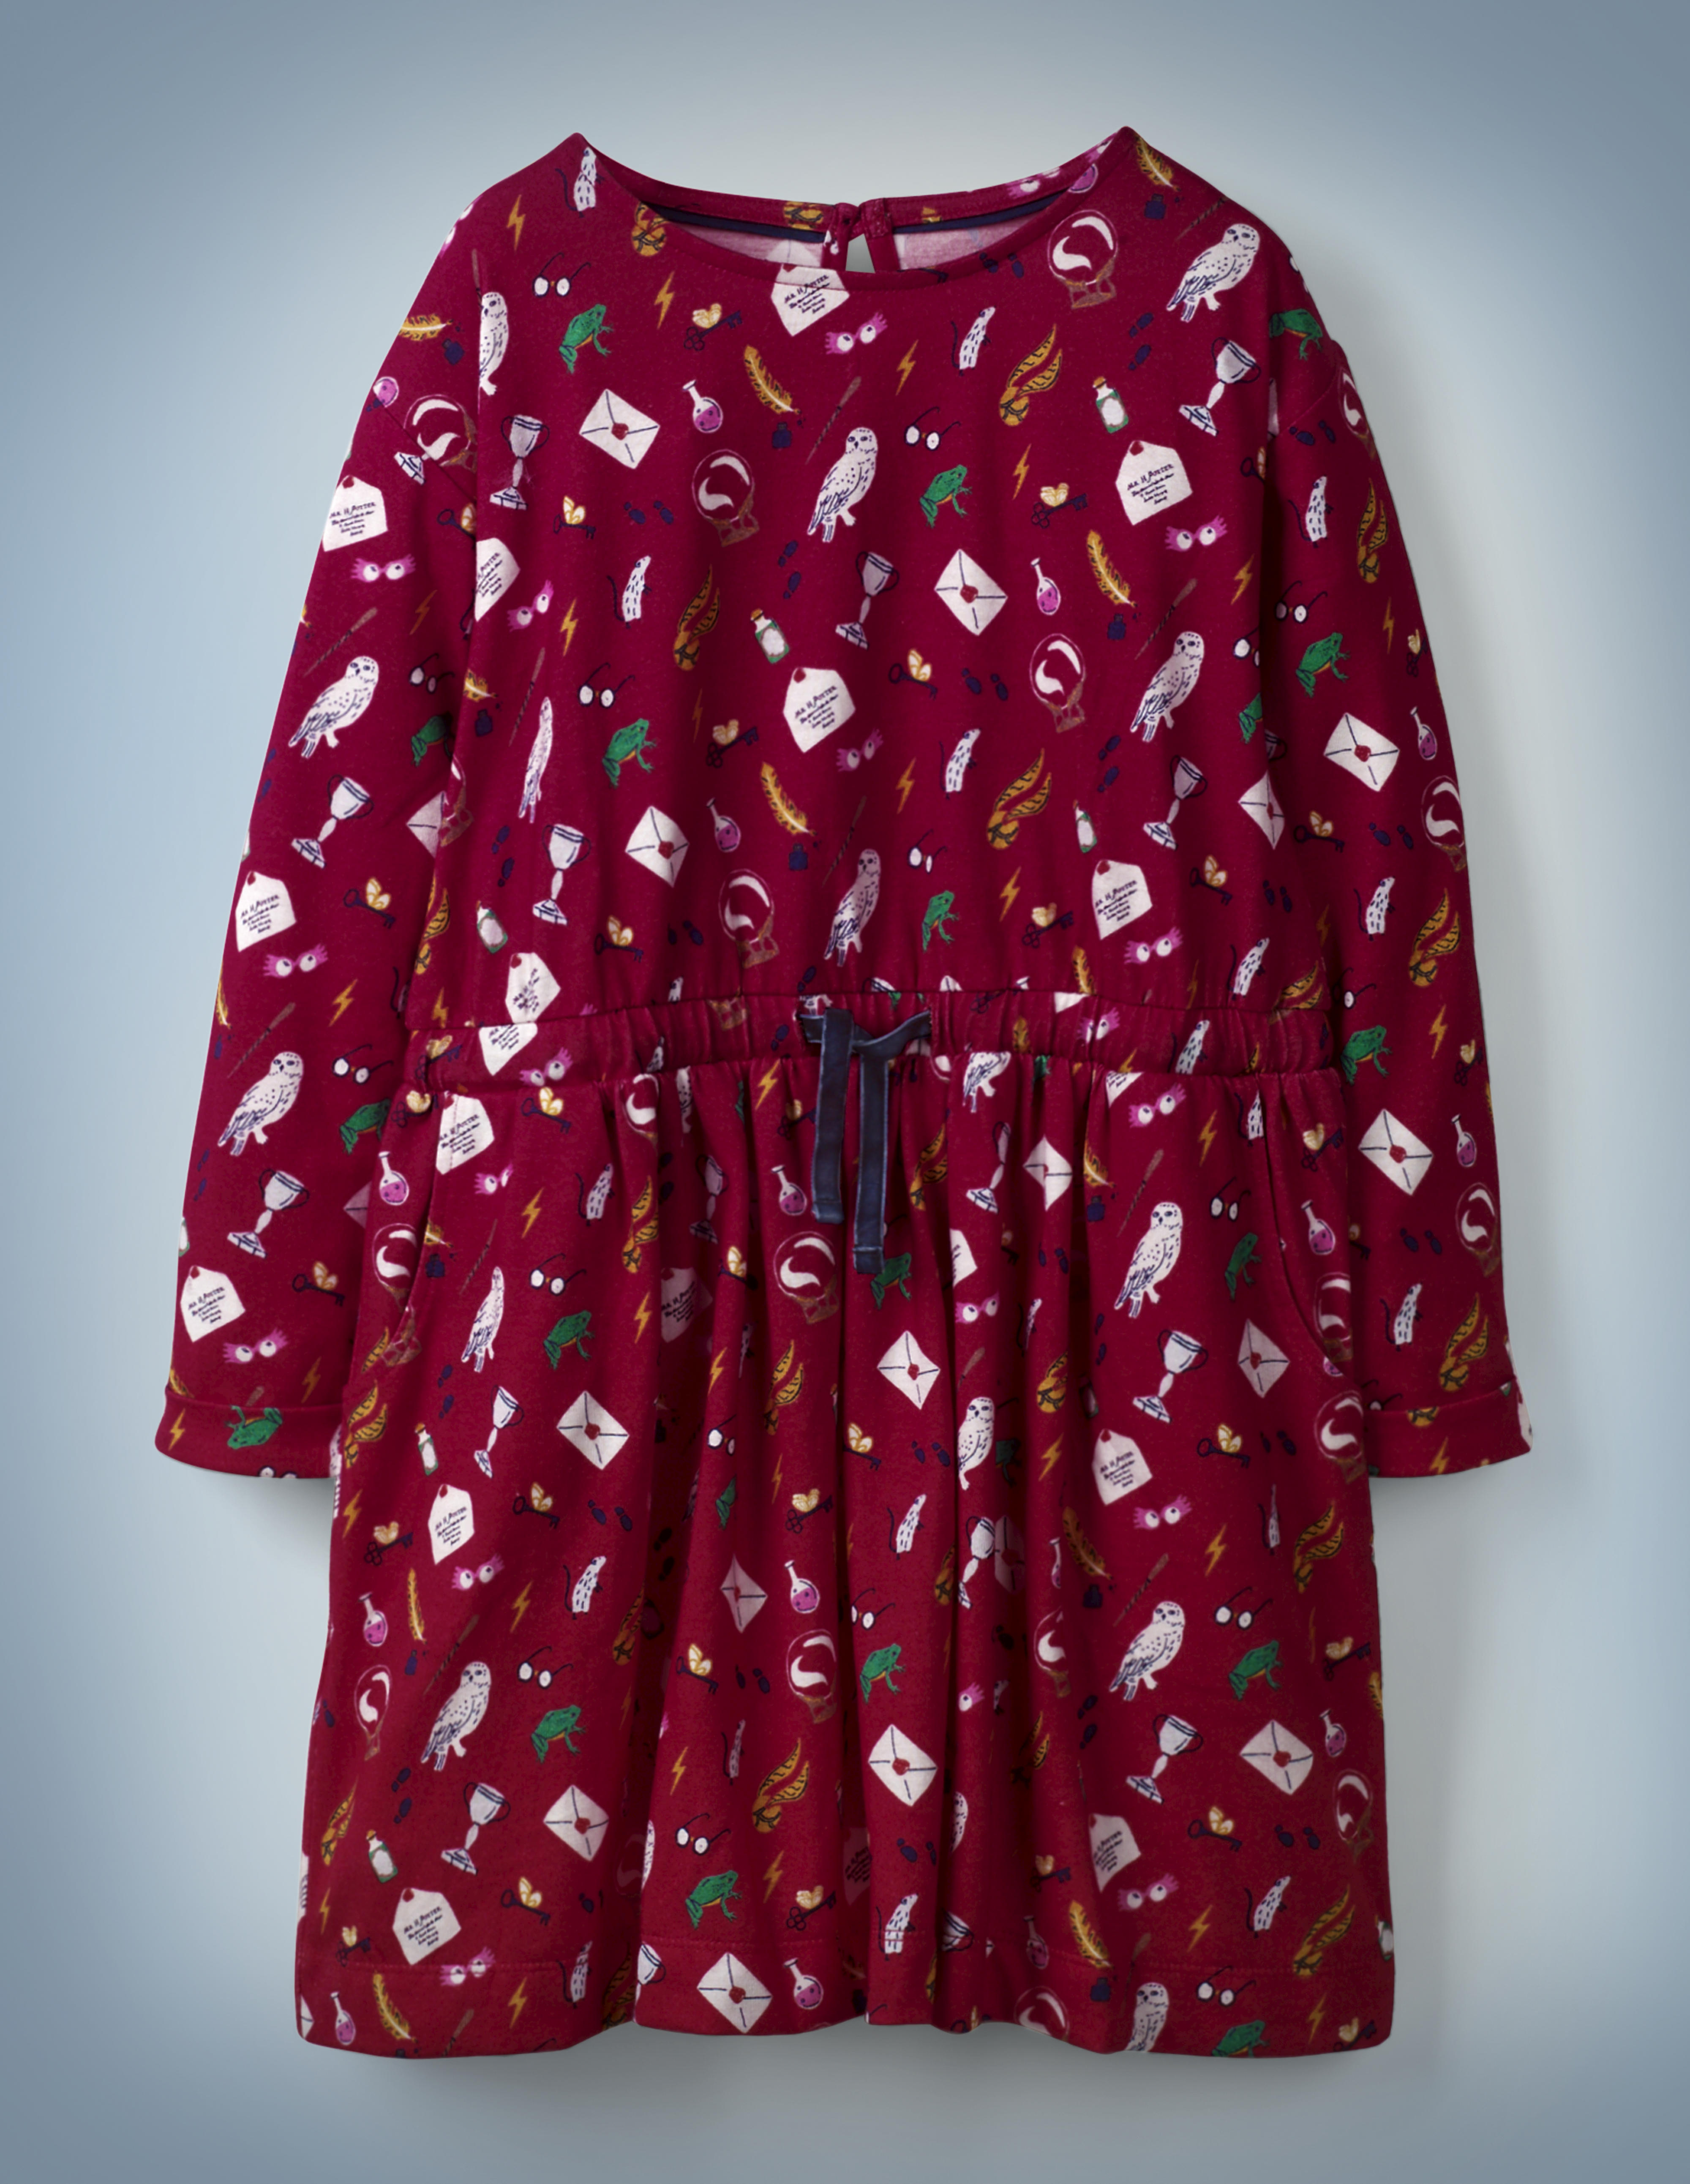 """The Mini Boden Hogwarts Printed Dress in red features an all-over pattern of iconic """"Harry Potter"""" images, including Luna Lovegood's Spectrespecs, Hedwig, and a Hogwarts acceptance letter. The dress features a navy blue drawstring in its center. It retails at £24."""